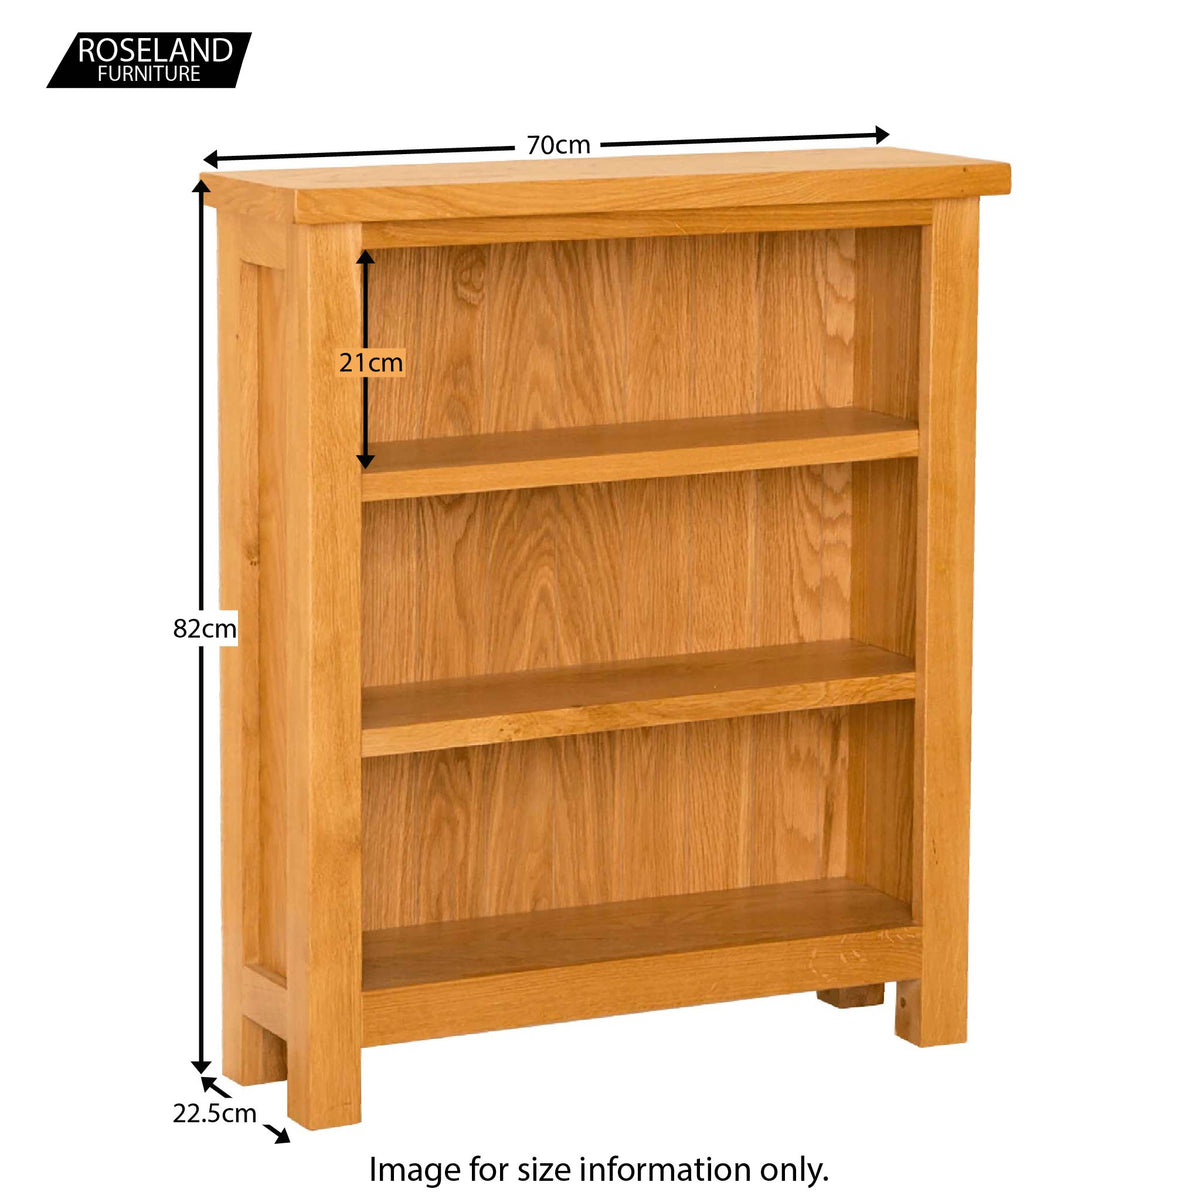 Lanner Oak Small Bookcase - Size Guide